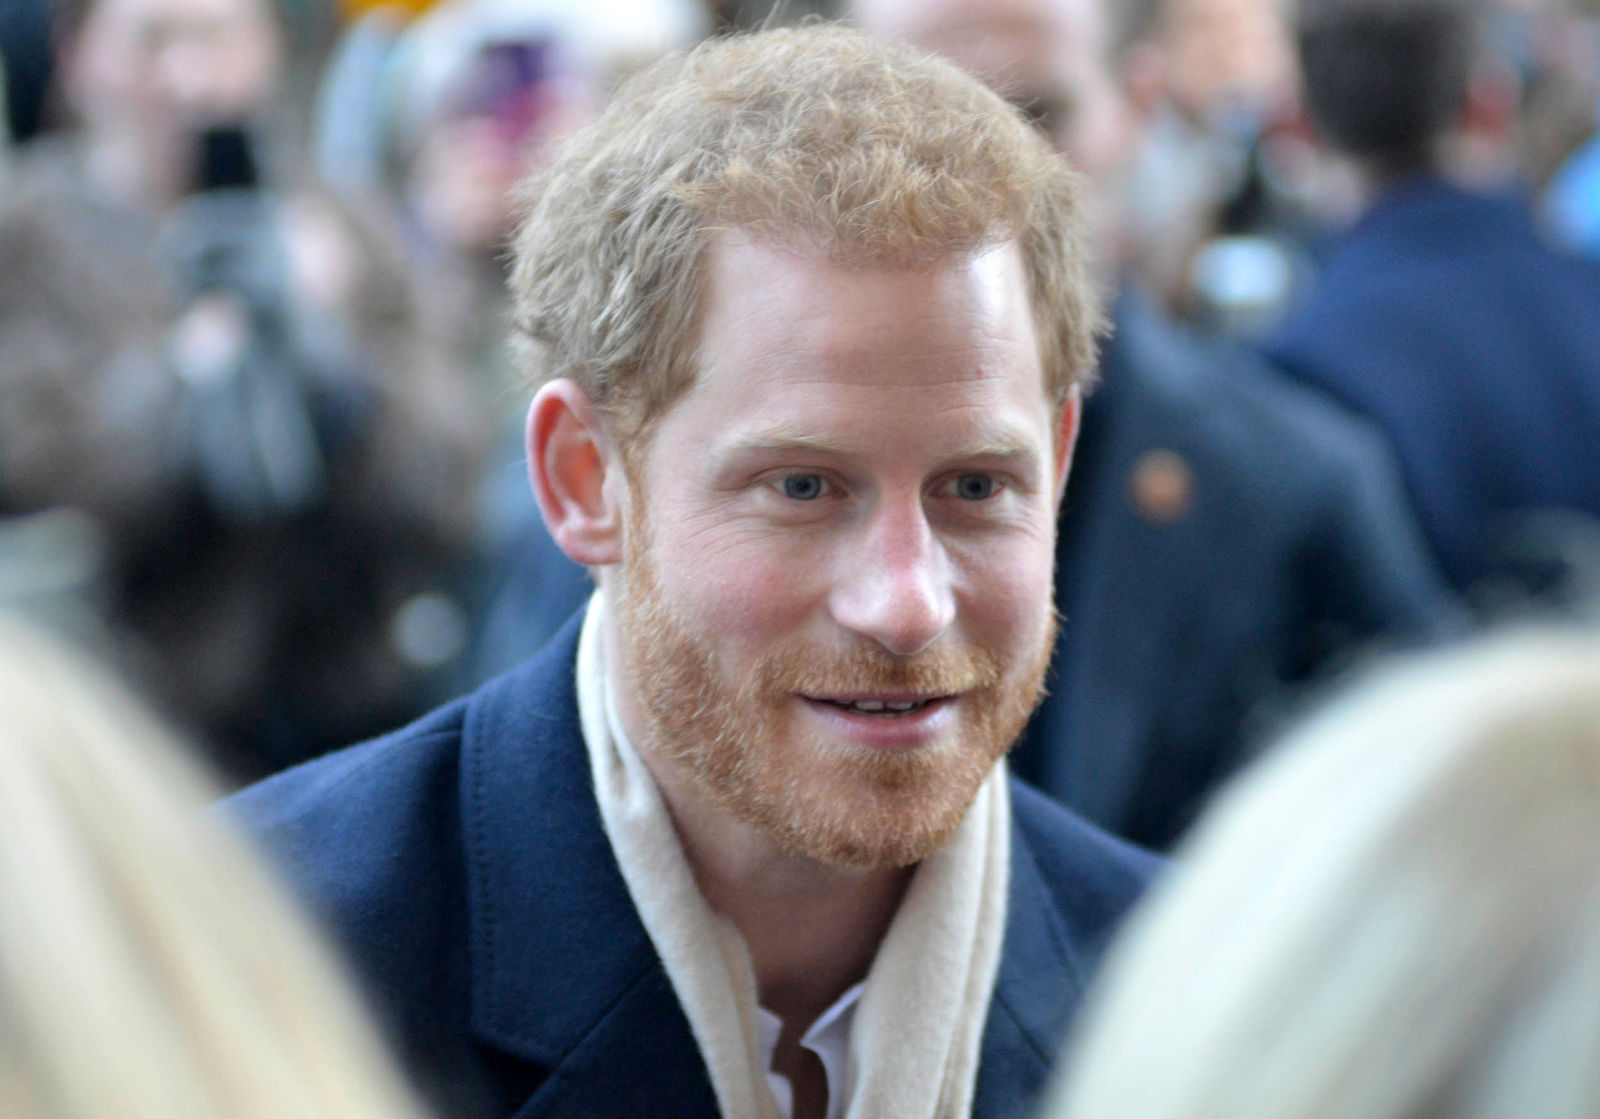 Prince Harry and Meghan Markle attend the Terrence Higgins Trust charity fair at the Nottingham Contemporary Centre                Featuring: Prince Harry        Where: Nottingham, United Kingdom        When: 01 Dec 2017        Credit: WENN.com{&nbsp;}<p></p>